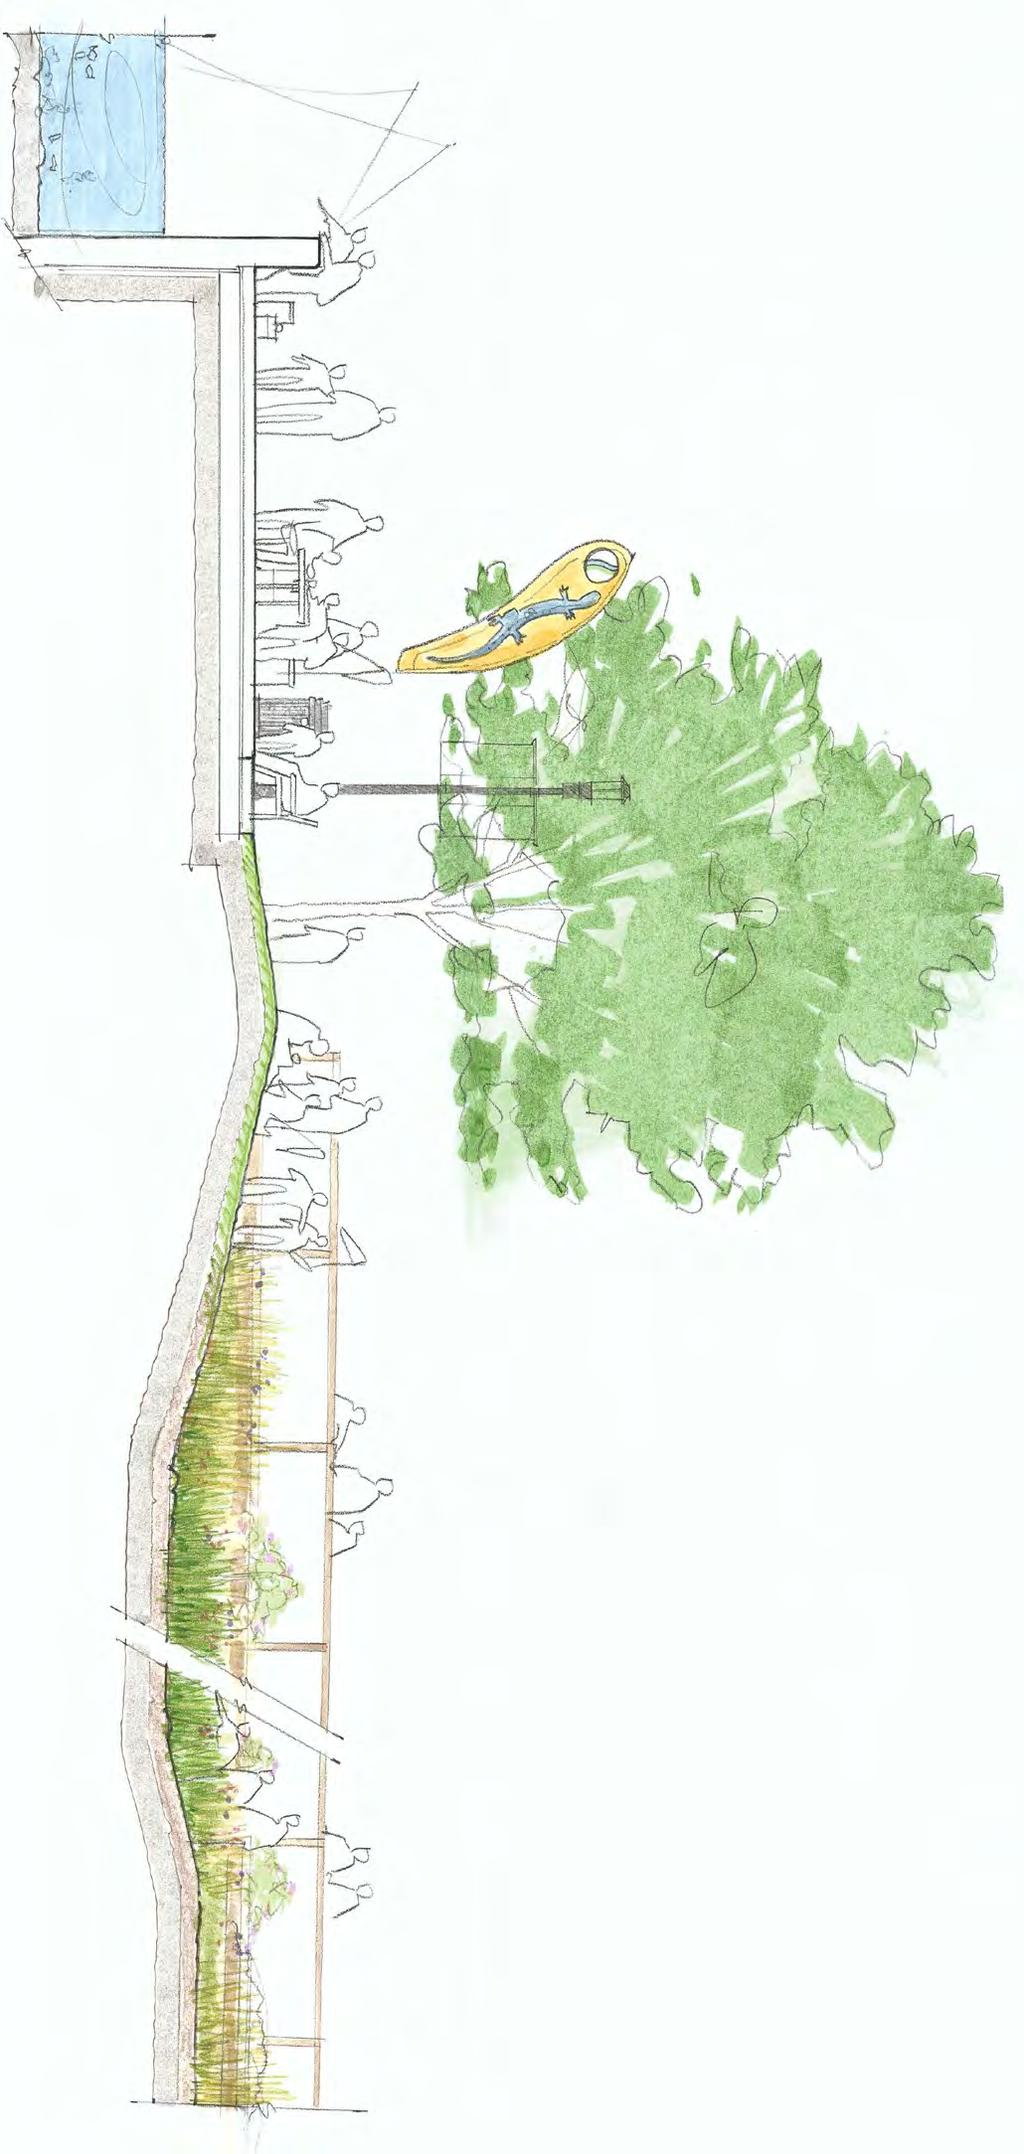 This illustrative section shows the proposed riverfront edge